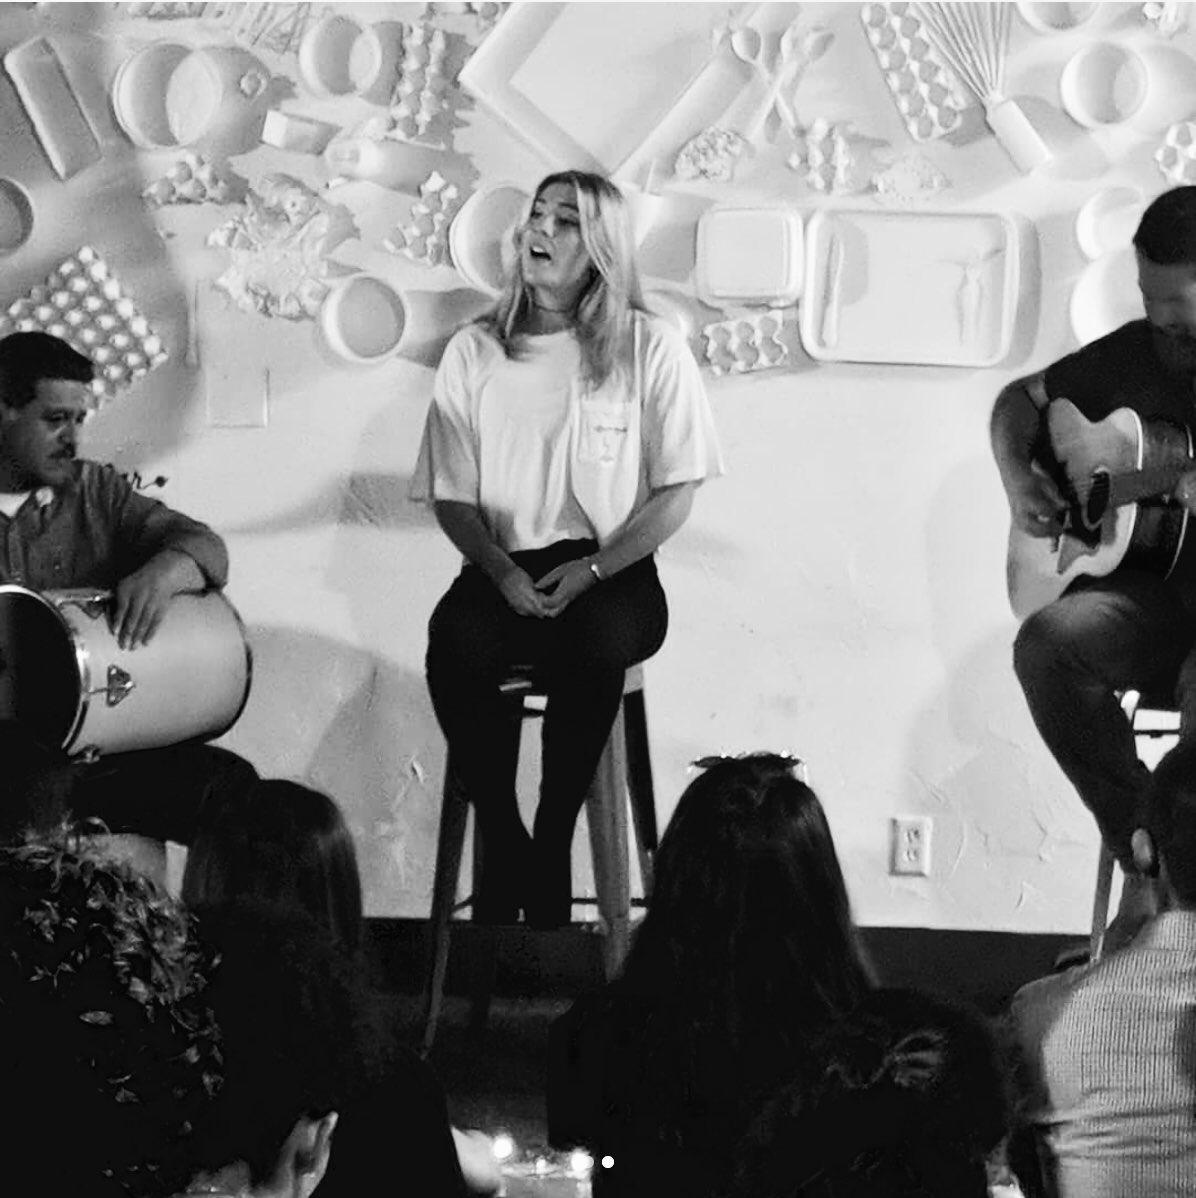 test Twitter Media - SoFar Sounds 08.07.2018 // Had such a beautiful night performing unplugged at my first @sofarsounds gig! Thank you for having me and much love to all who came out! #sofarsounds https://t.co/mRFpulipdx